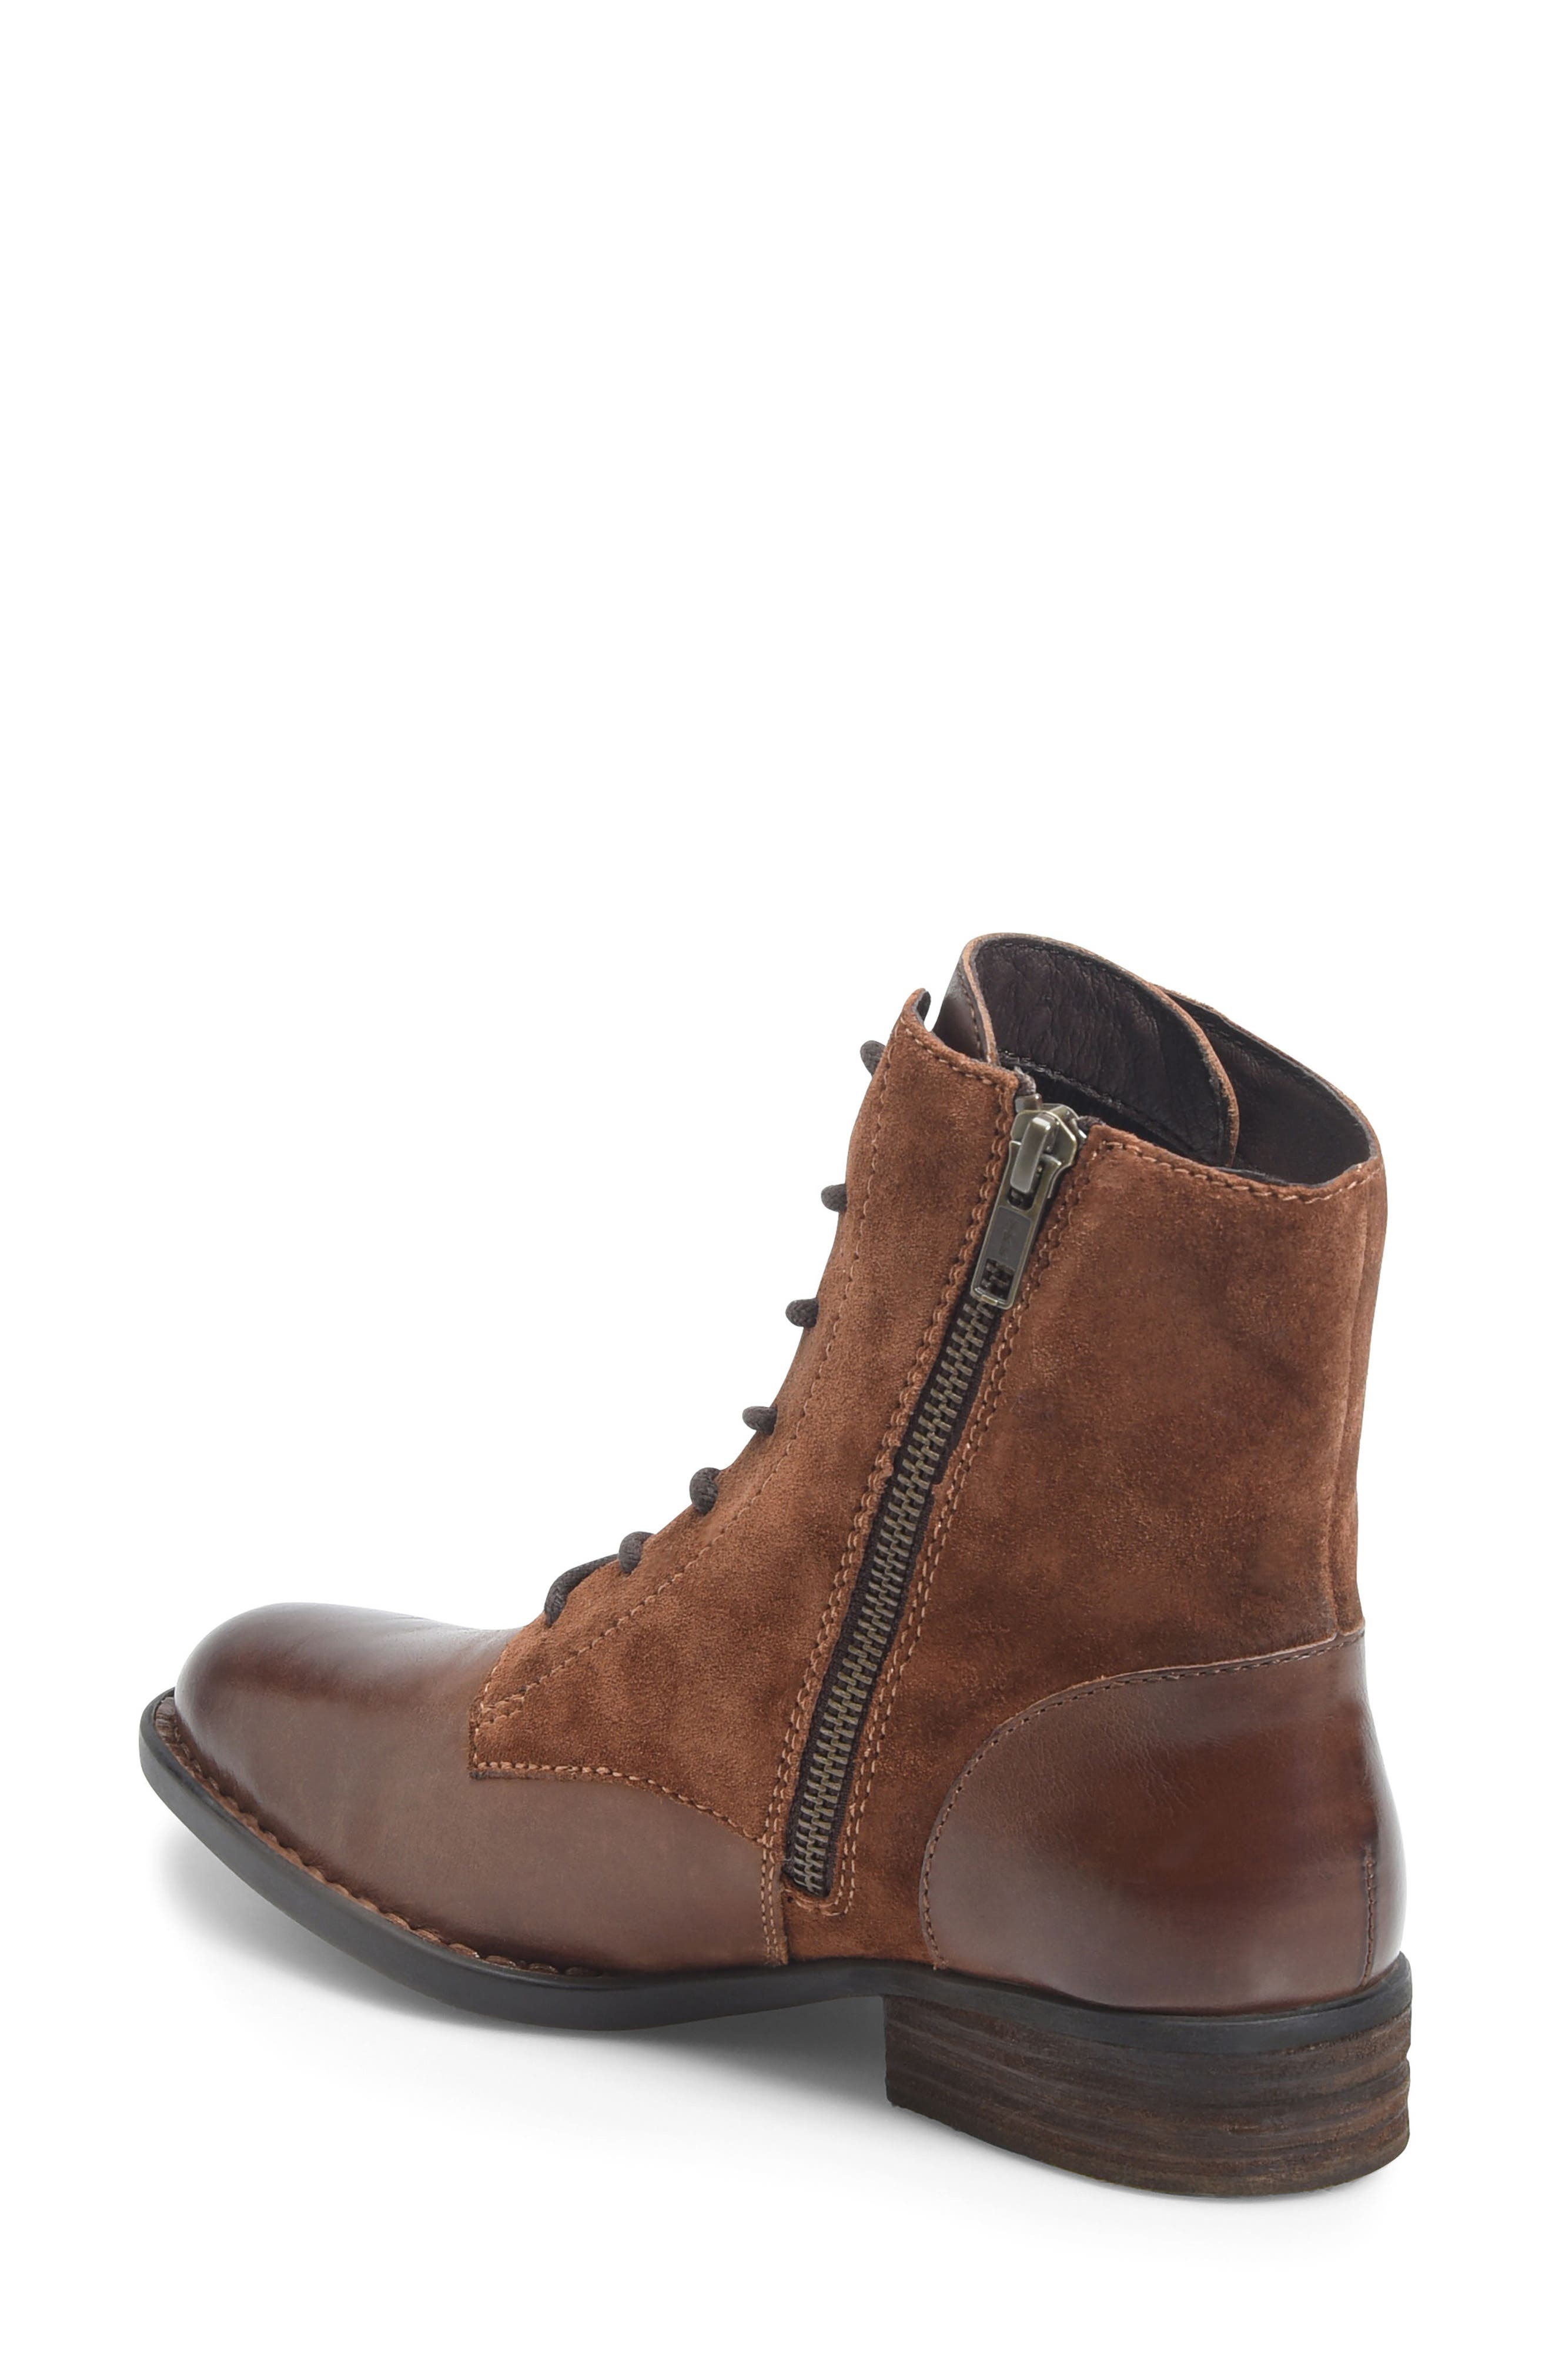 Clements Lace-Up Boot,                             Alternate thumbnail 2, color,                             Brown/ Rust Combo